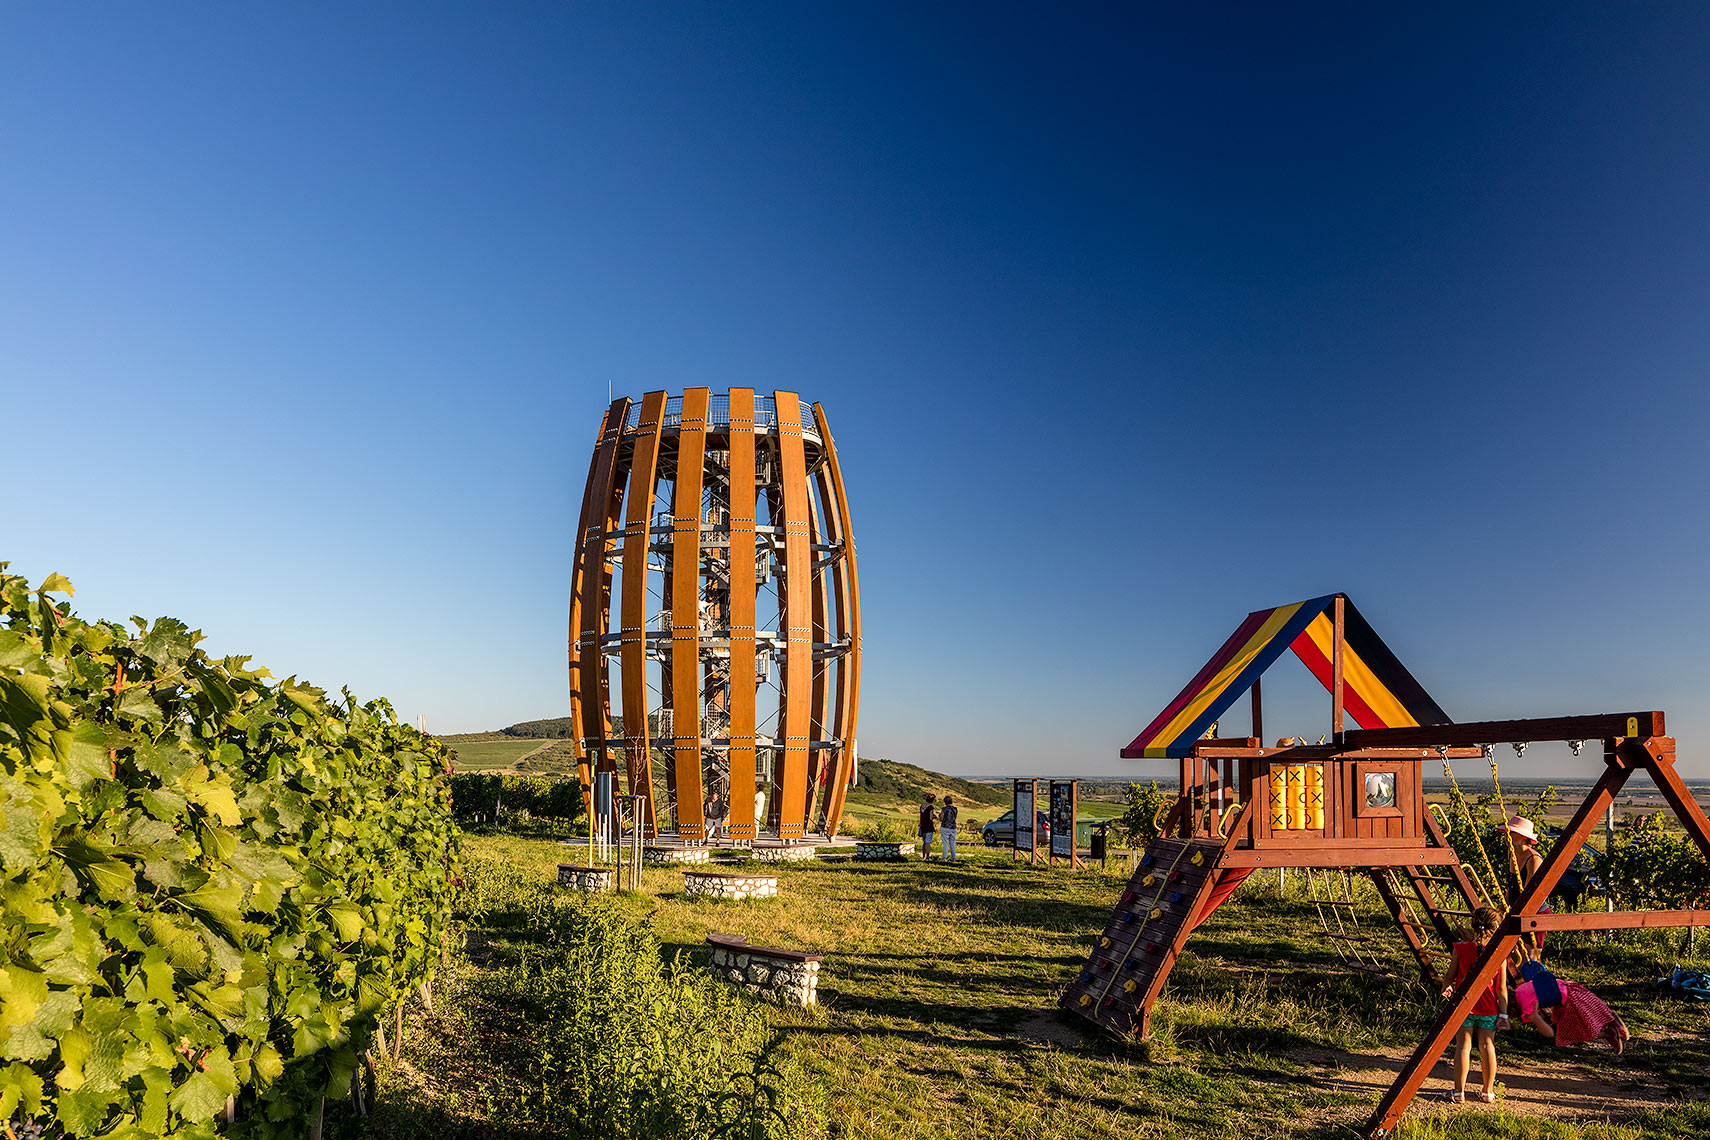 Tokaj tower and playground, Peter A. Sellar Architectural photographer